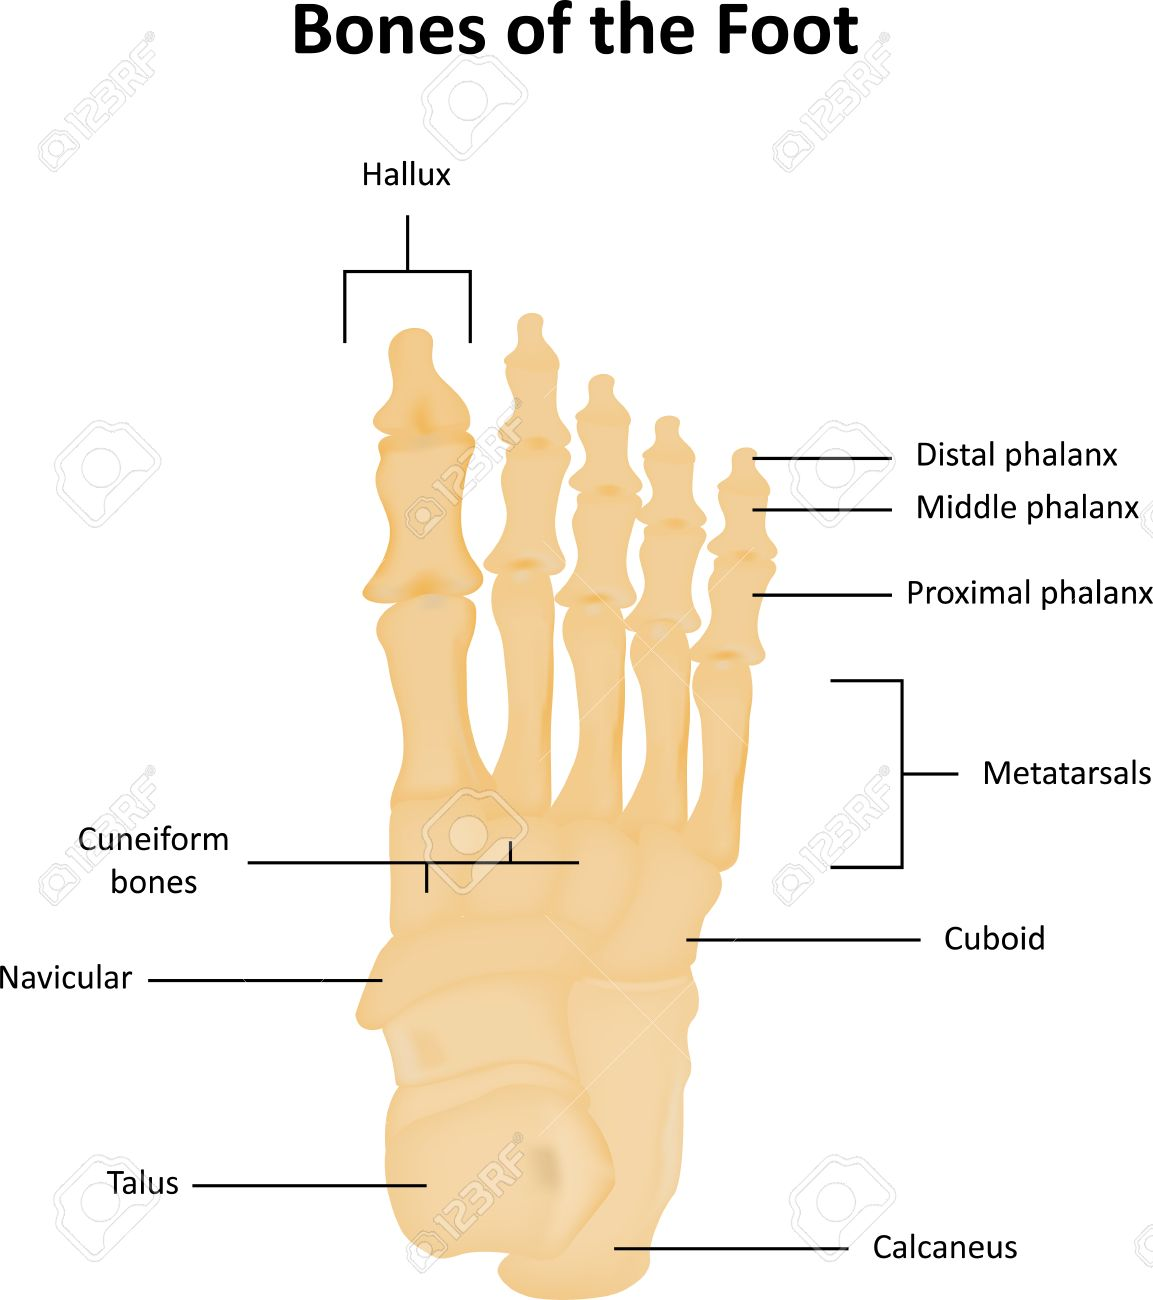 Tarsal Bones Of The Foot Anatomical Stock Photo, Picture And Royalty ...